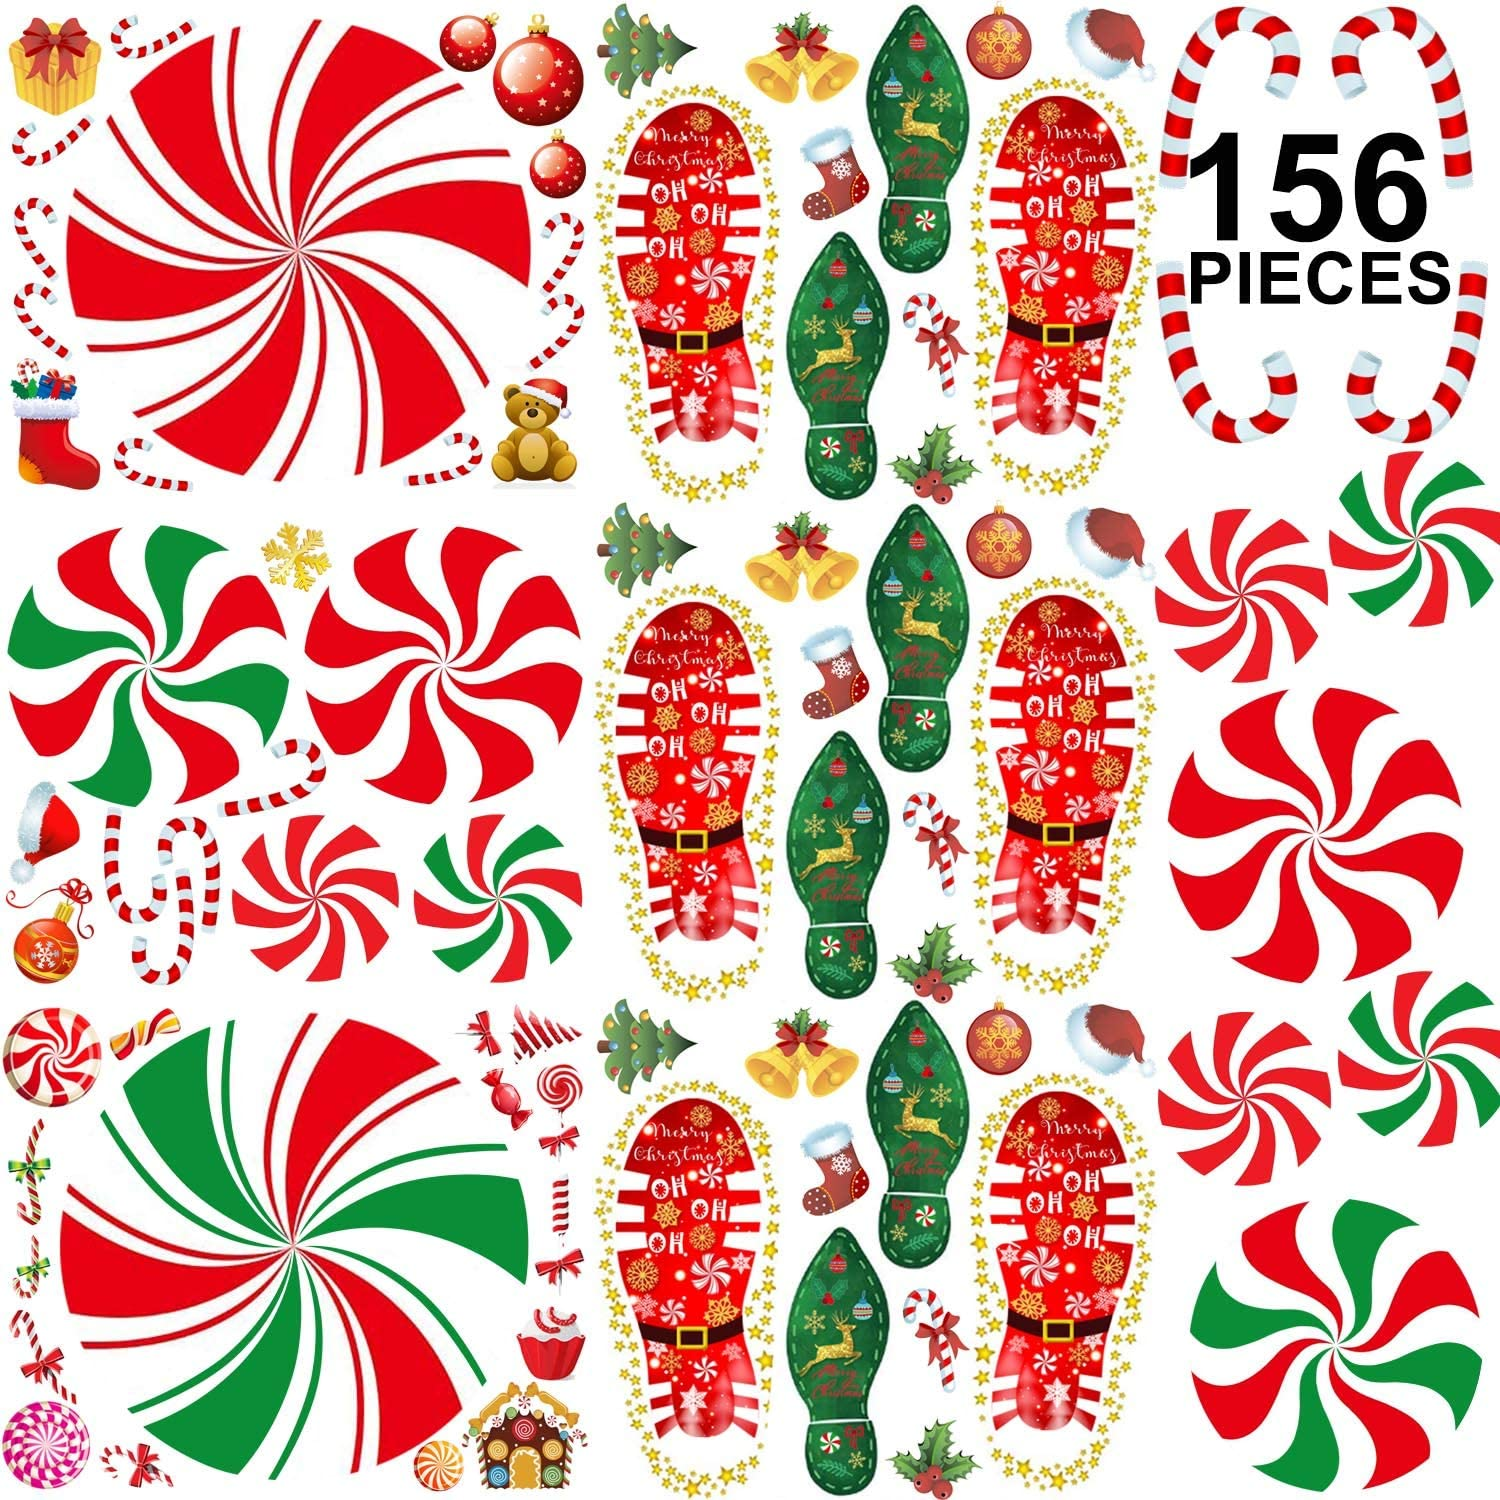 156PCS Christmas Peppermint Floor Decals Footprints Stickers for Christmas Candy Party Decoration Xmas Party Decor Supplies, 12 Sheets